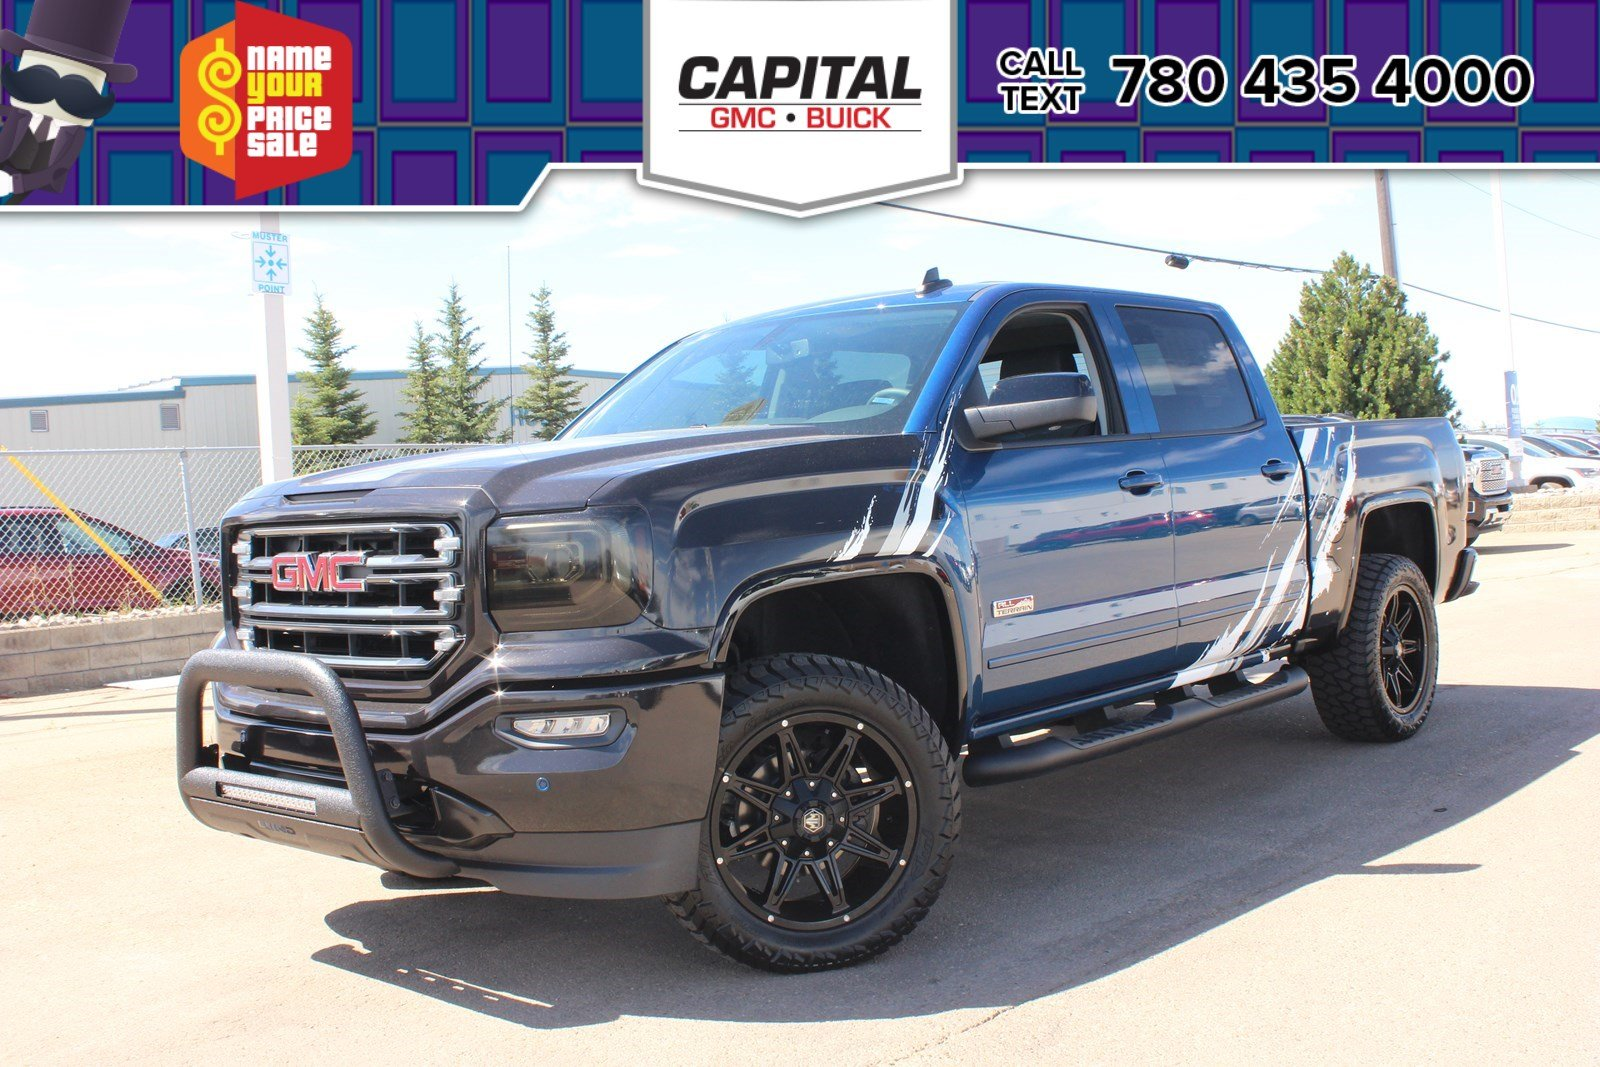 Pre-Owned 2018 GMC Sierra 1500 Crew Cab SLT All Terrain | LEVELING KIT